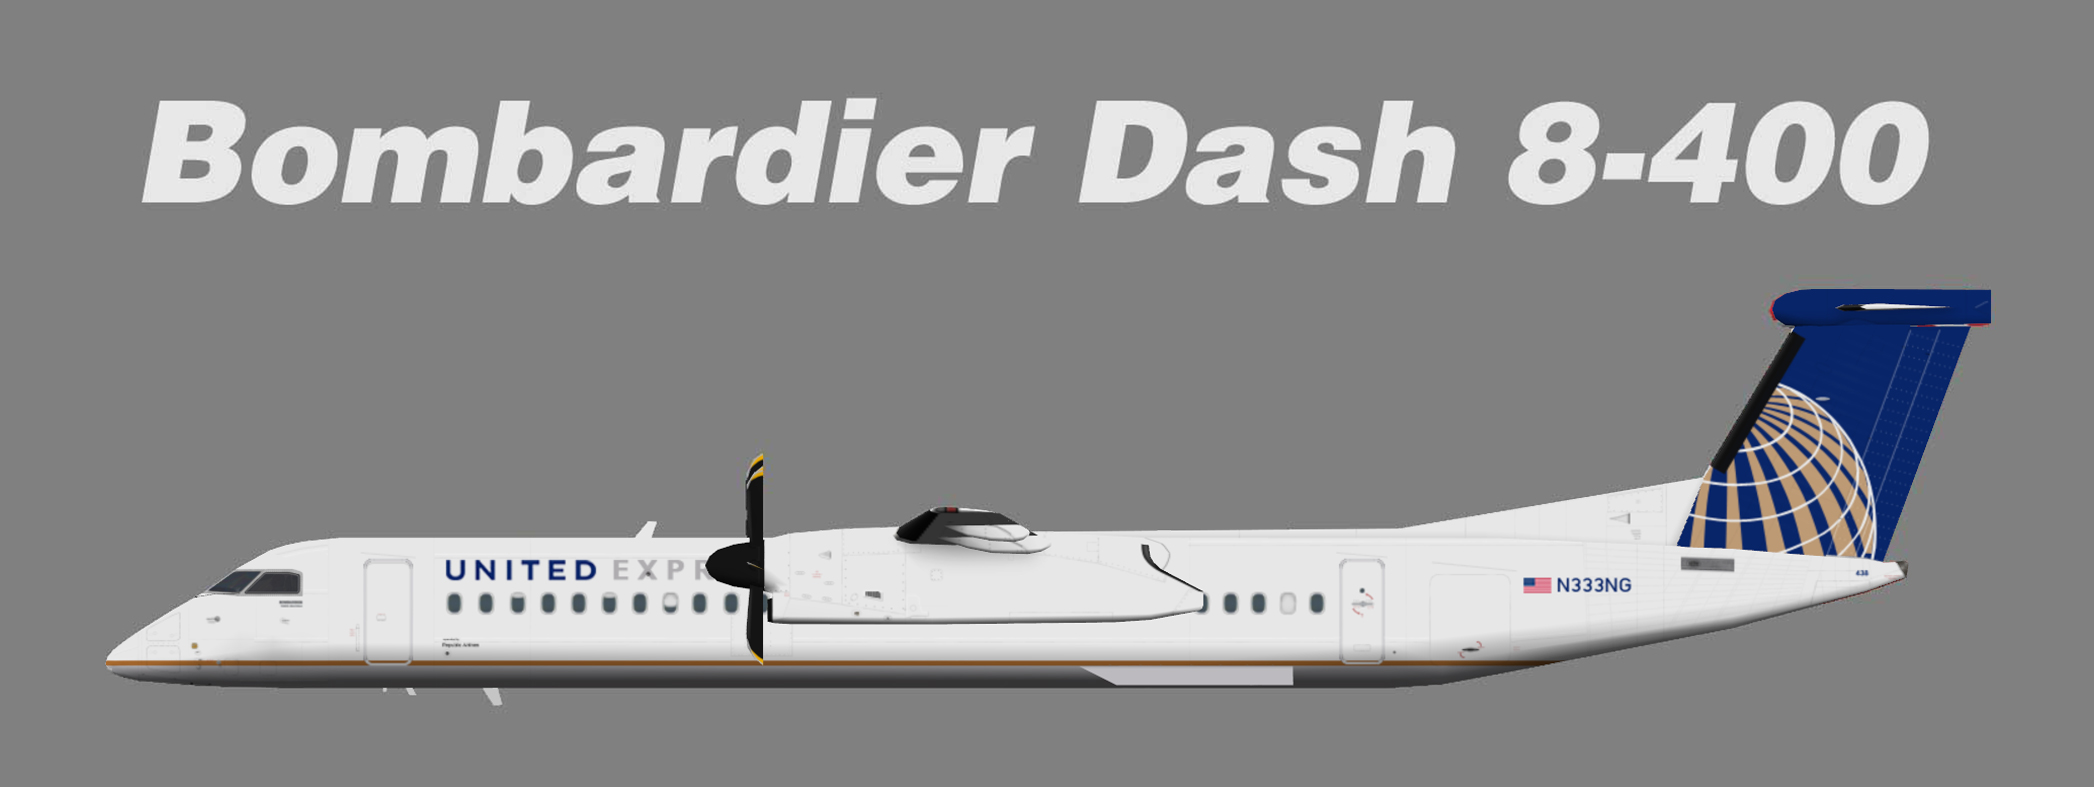 United Airlines Bombardier Dash 8